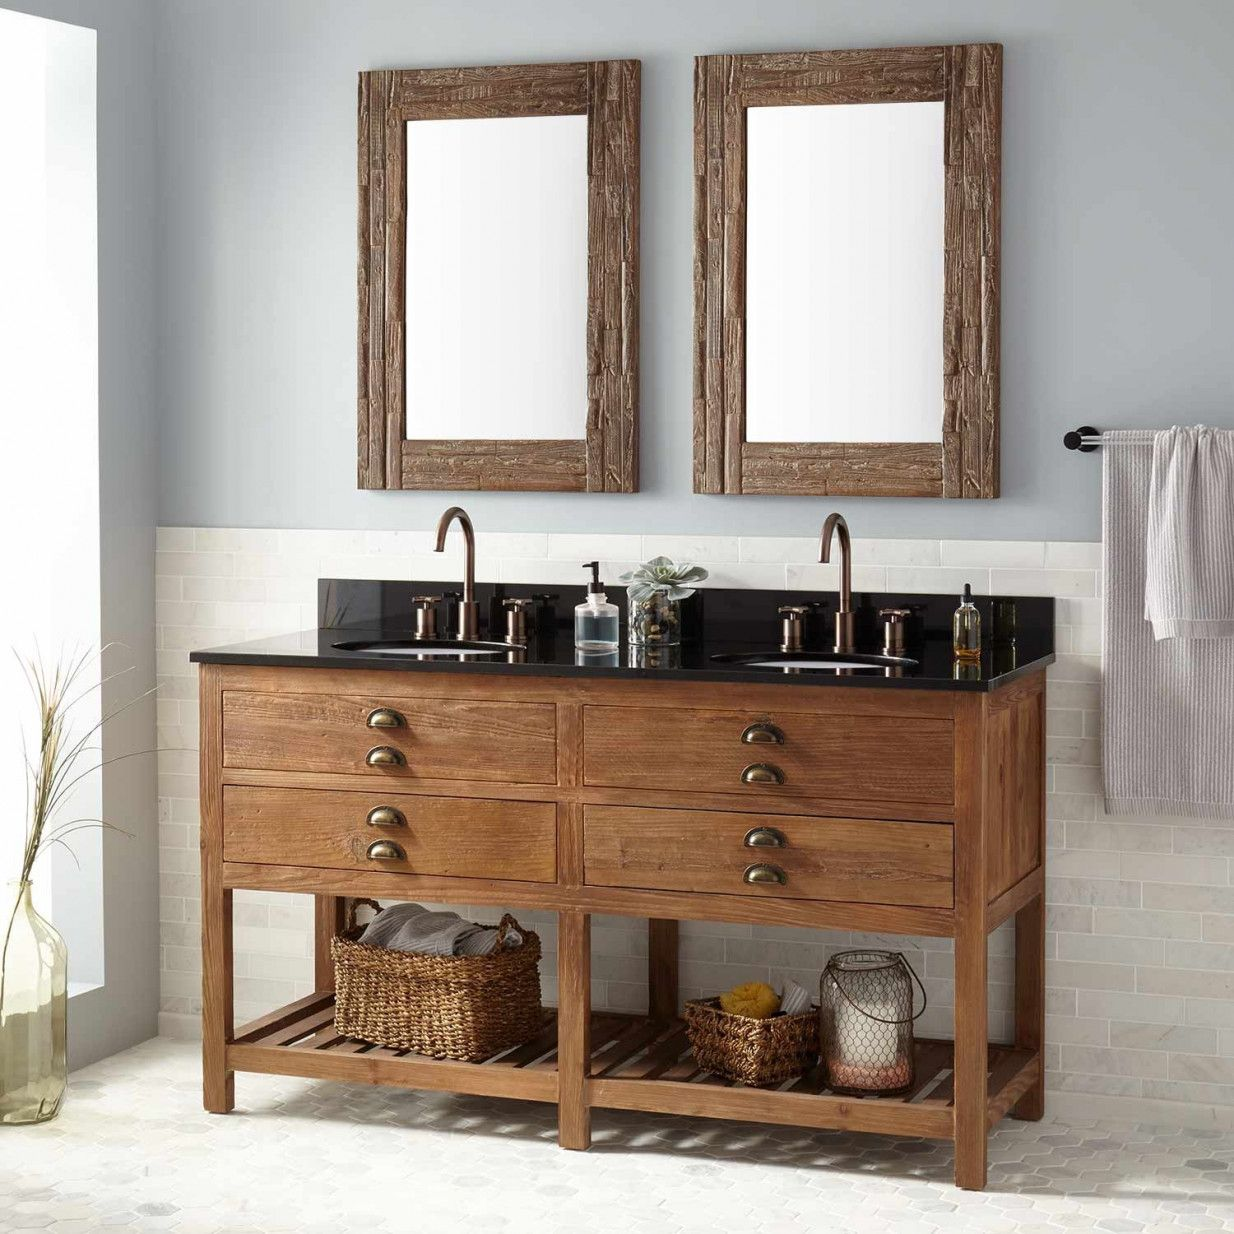 70 Antique Pine Bathroom Cabinet Interior House Paint Ideas Check More At Http